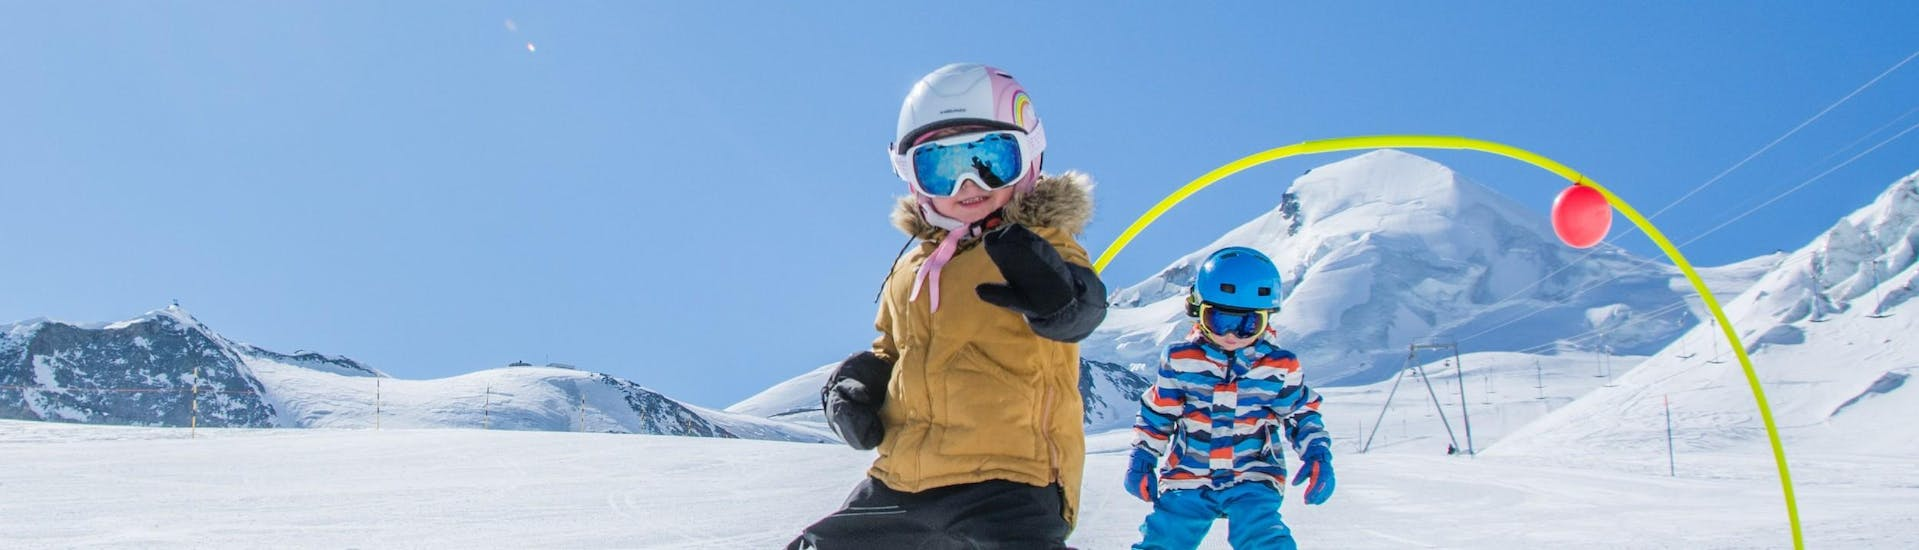 Kids Ski Lessons (from 4 y.) for All Levels